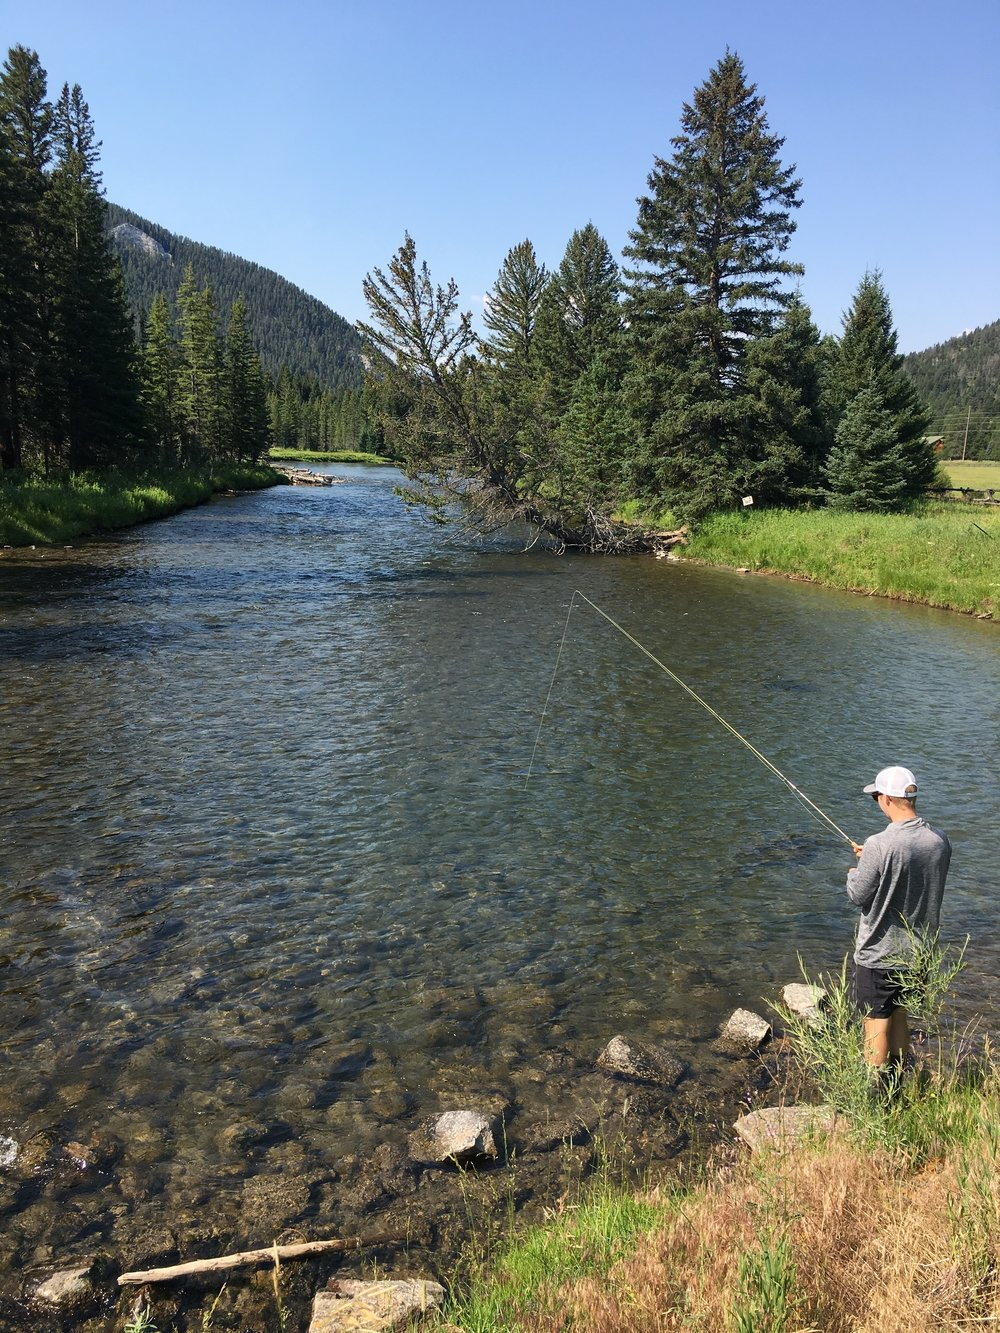 Friday - Fly fishing